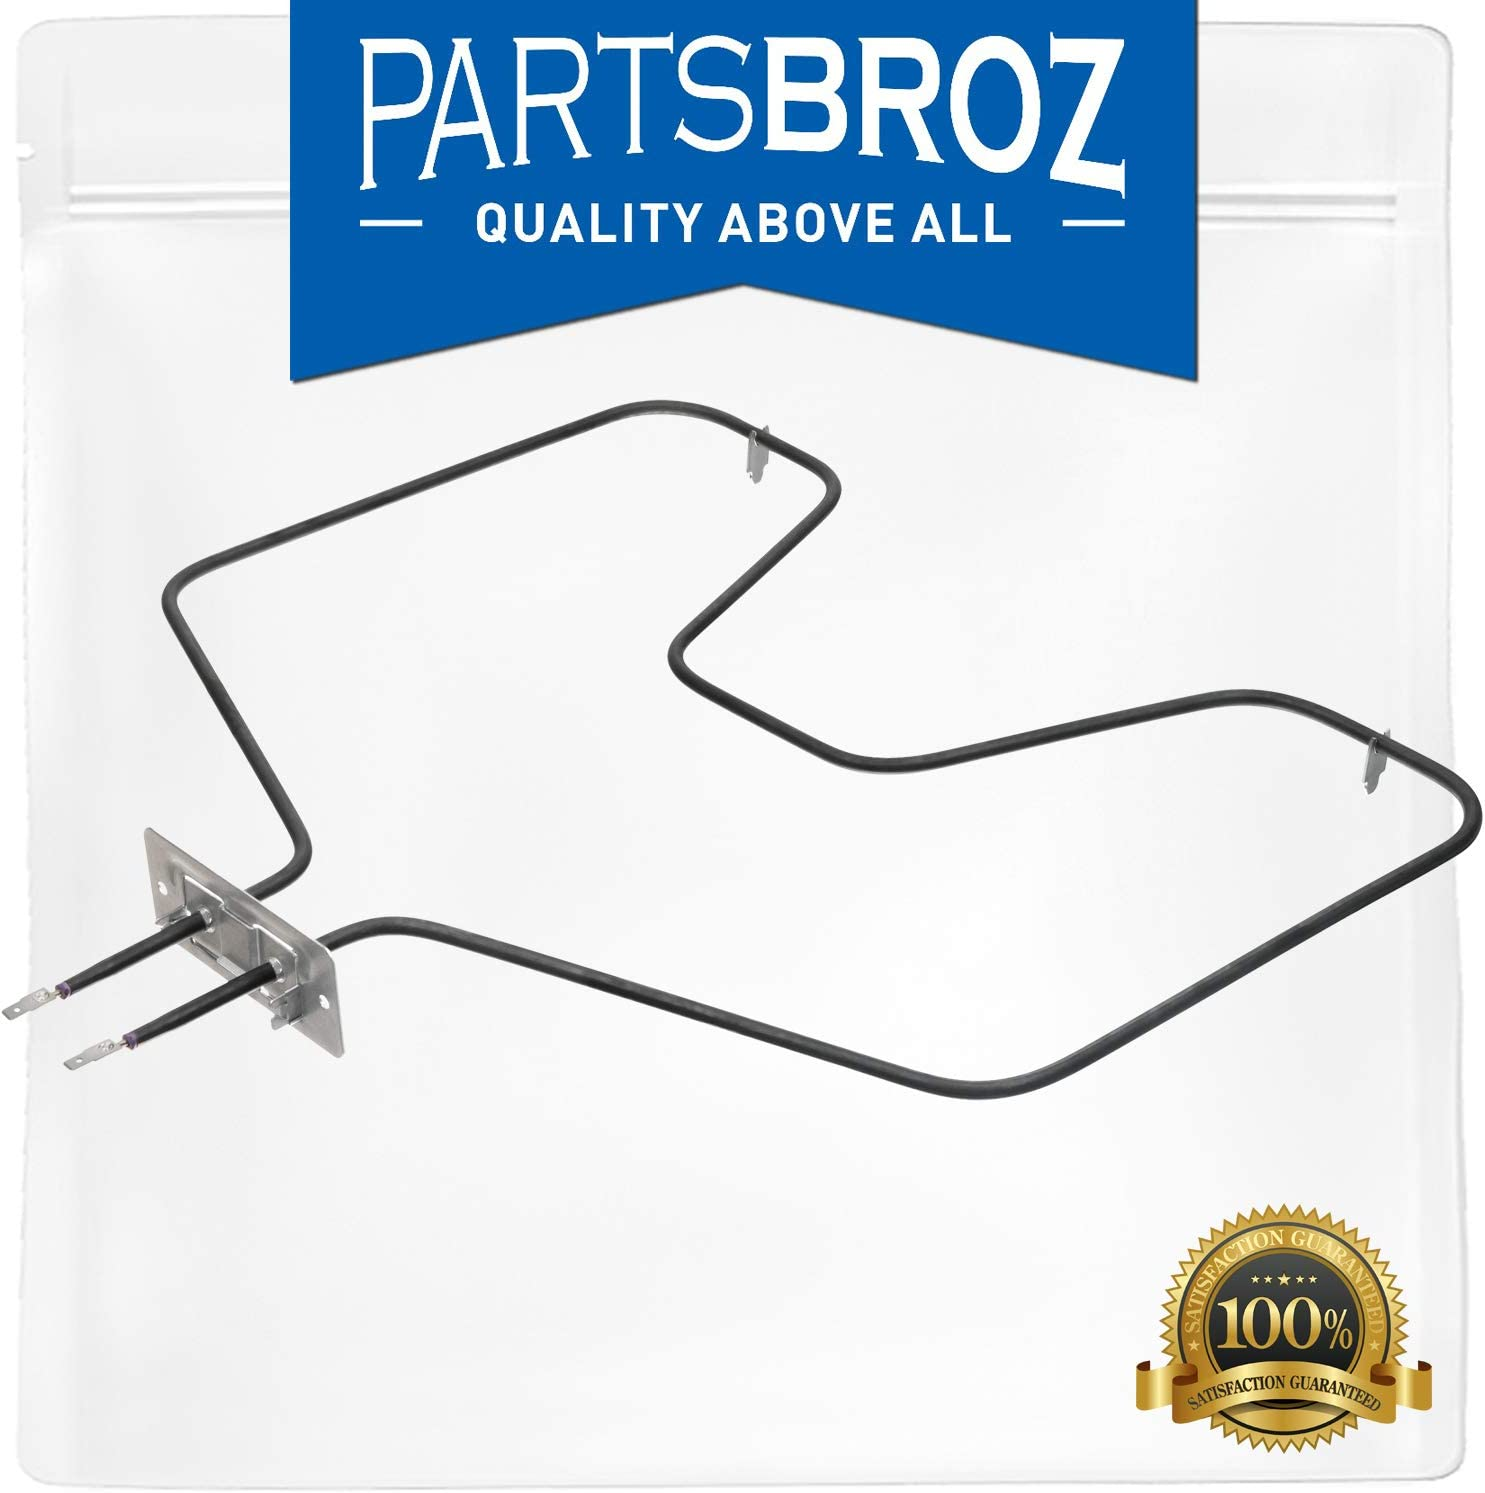 WB44X10009 Bake Element for GE Electric Range Ovens by PartsBroz - Replaces Part Numbers AP2031061, 260864, AH249344, EA249344 & PS249344